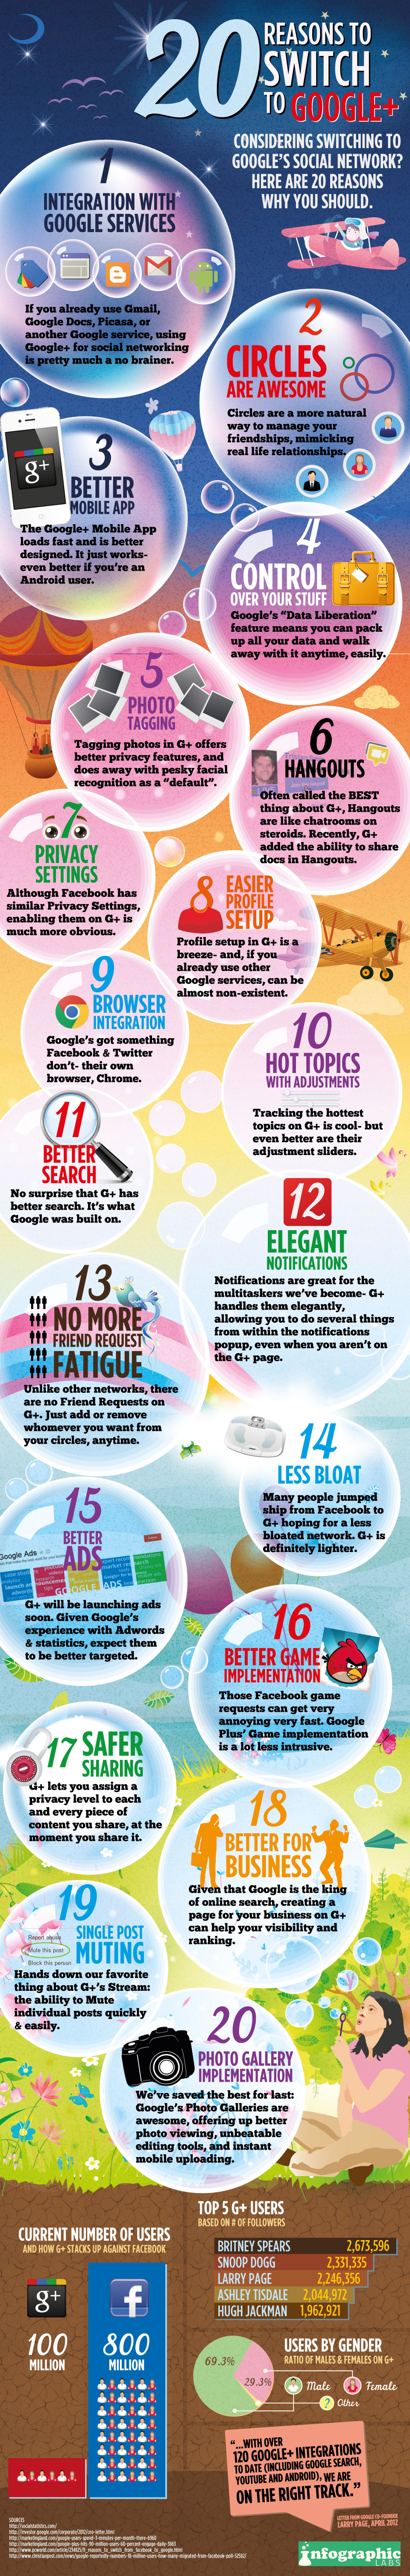 Google Plus Infographic - 20 Questions